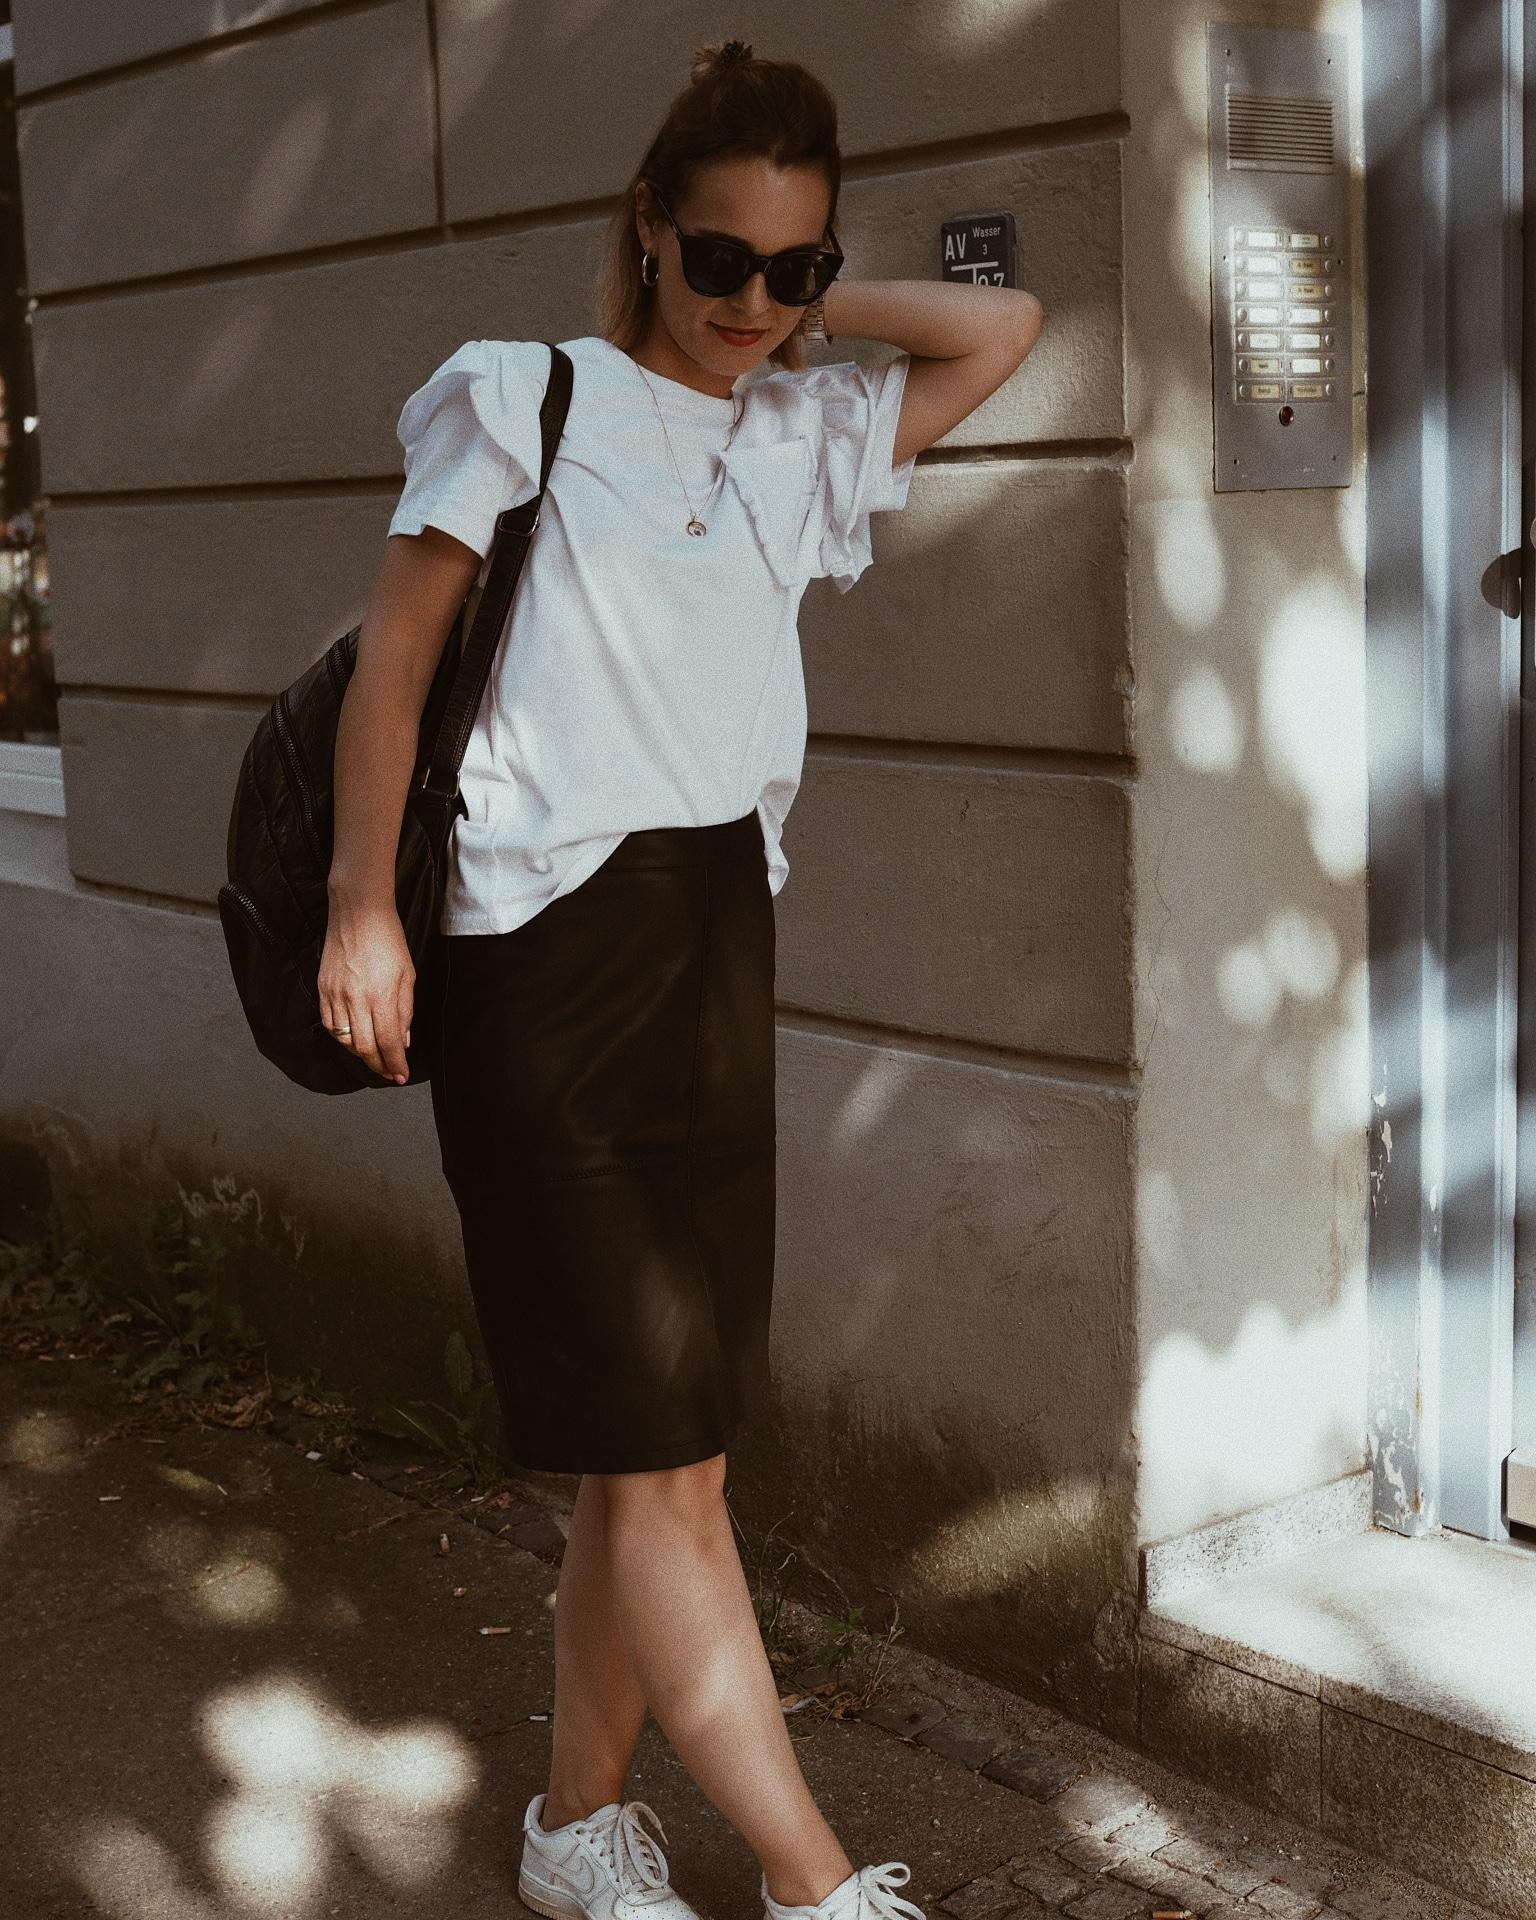 Black & white 🖤 #fashion #fashioncrush #ootd #halfbun #summerlook